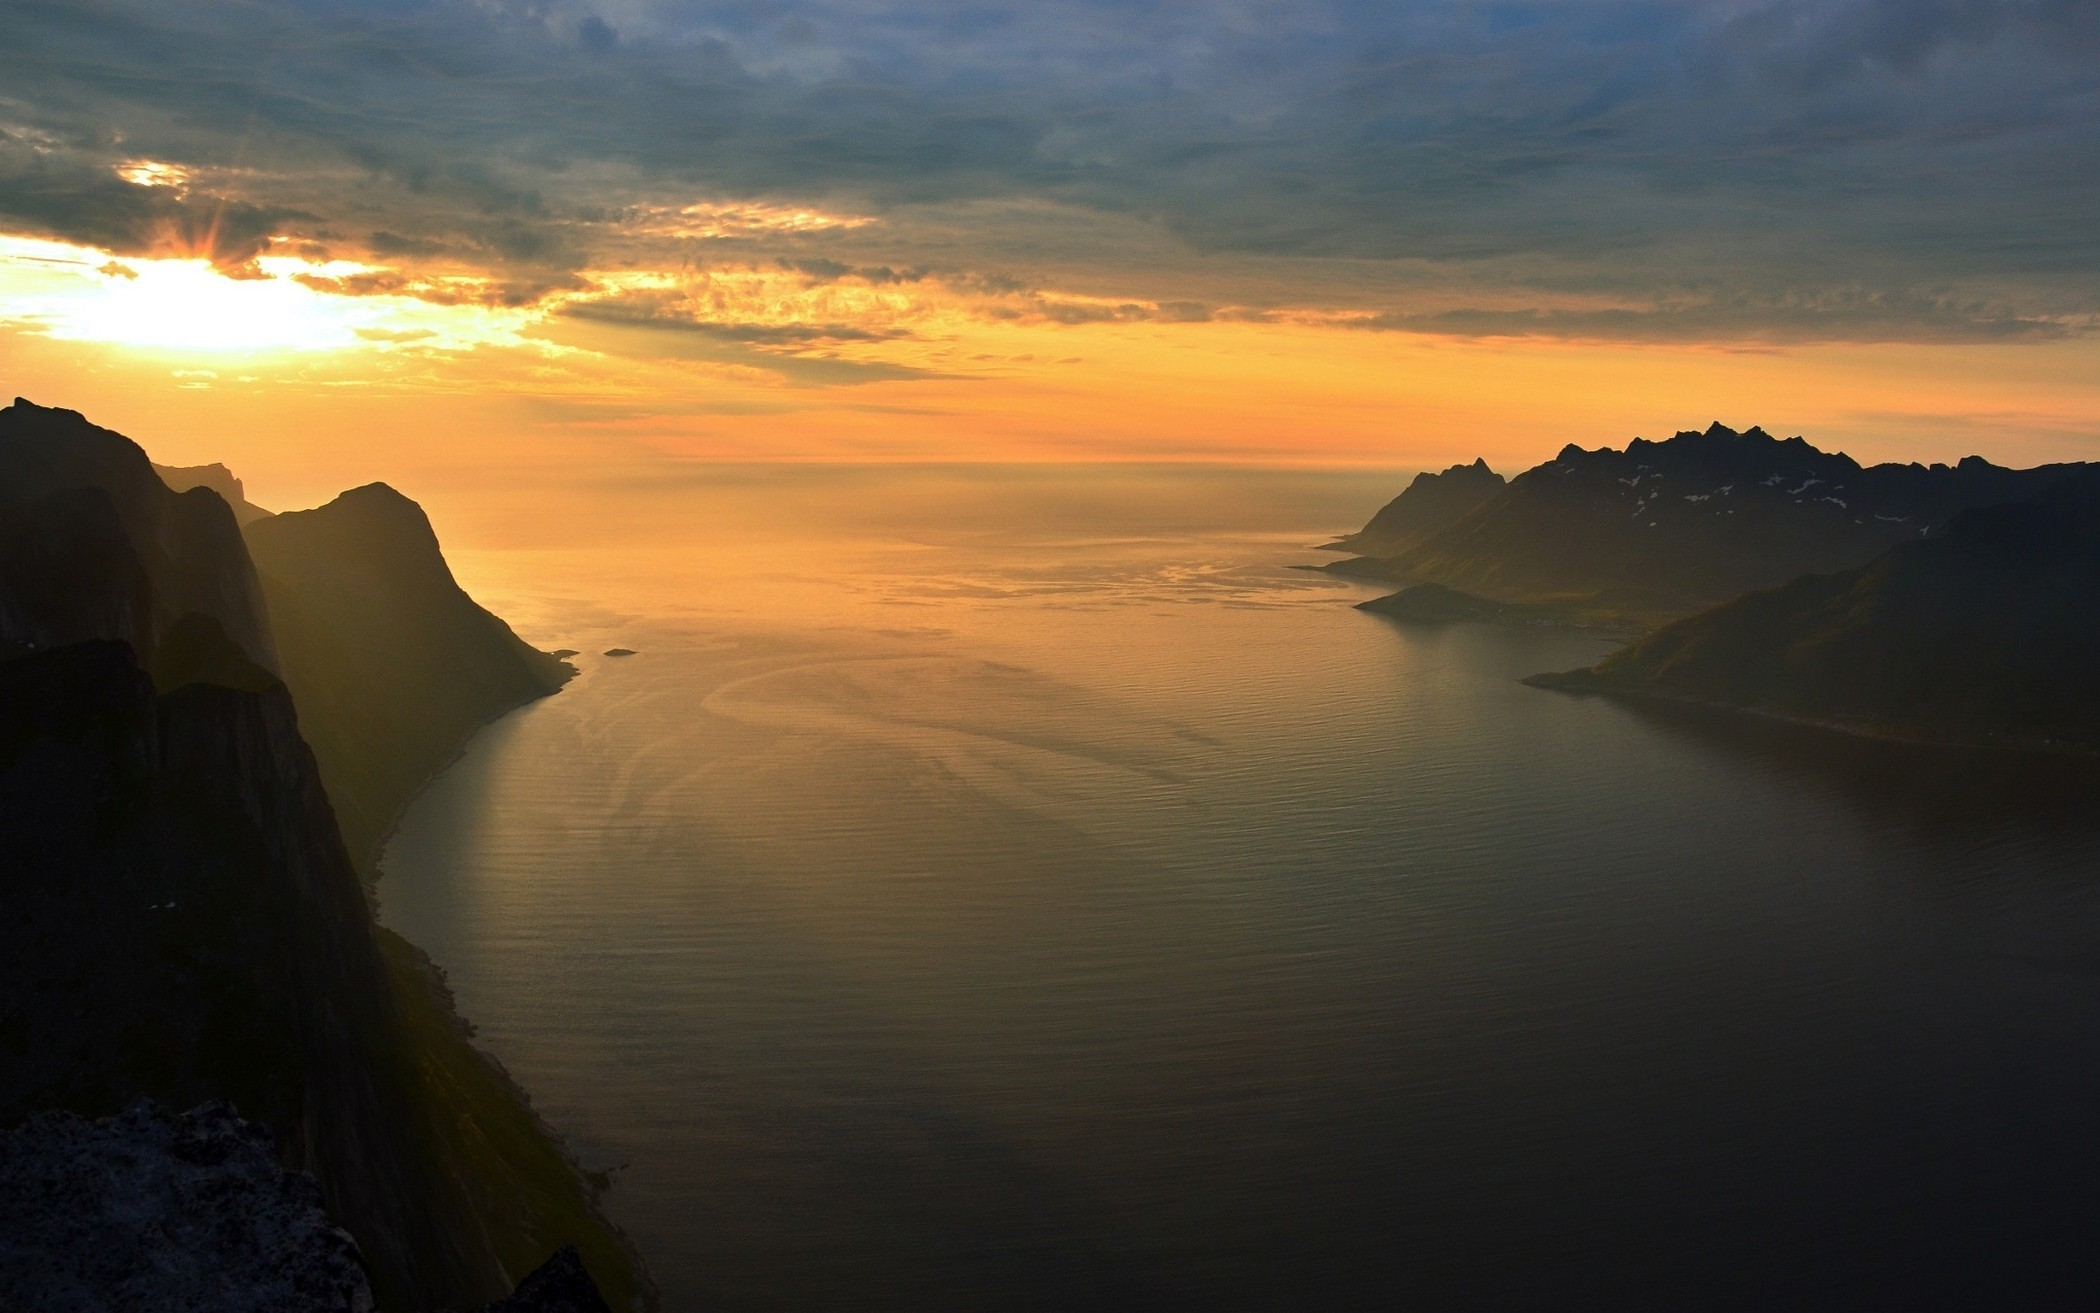 nature, Landscape, Summer, Sunset, Island, Fjord, Mountain, Sky, Clouds,  Sea, Norway Wallpapers HD / Desktop and Mobile Backgrounds